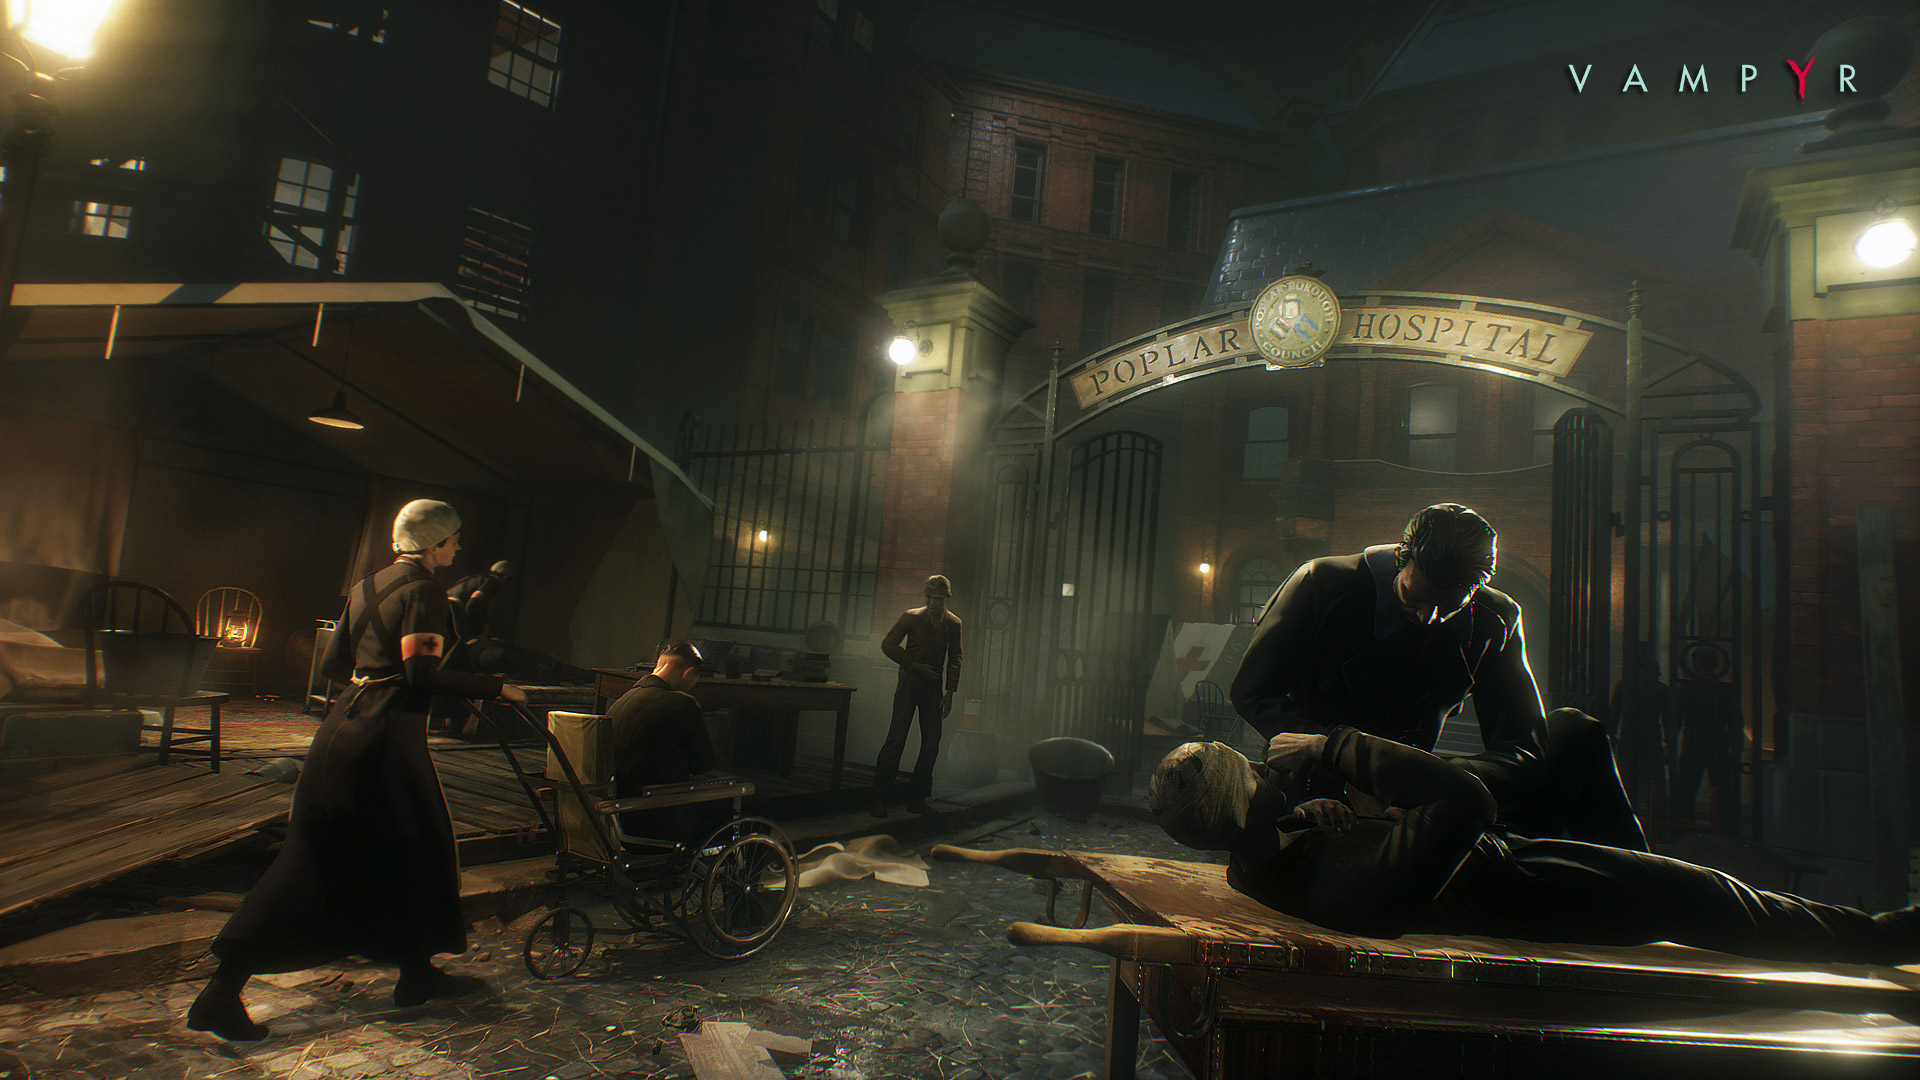 New Vampyr Screens Show Off Protagonists Duality VG247